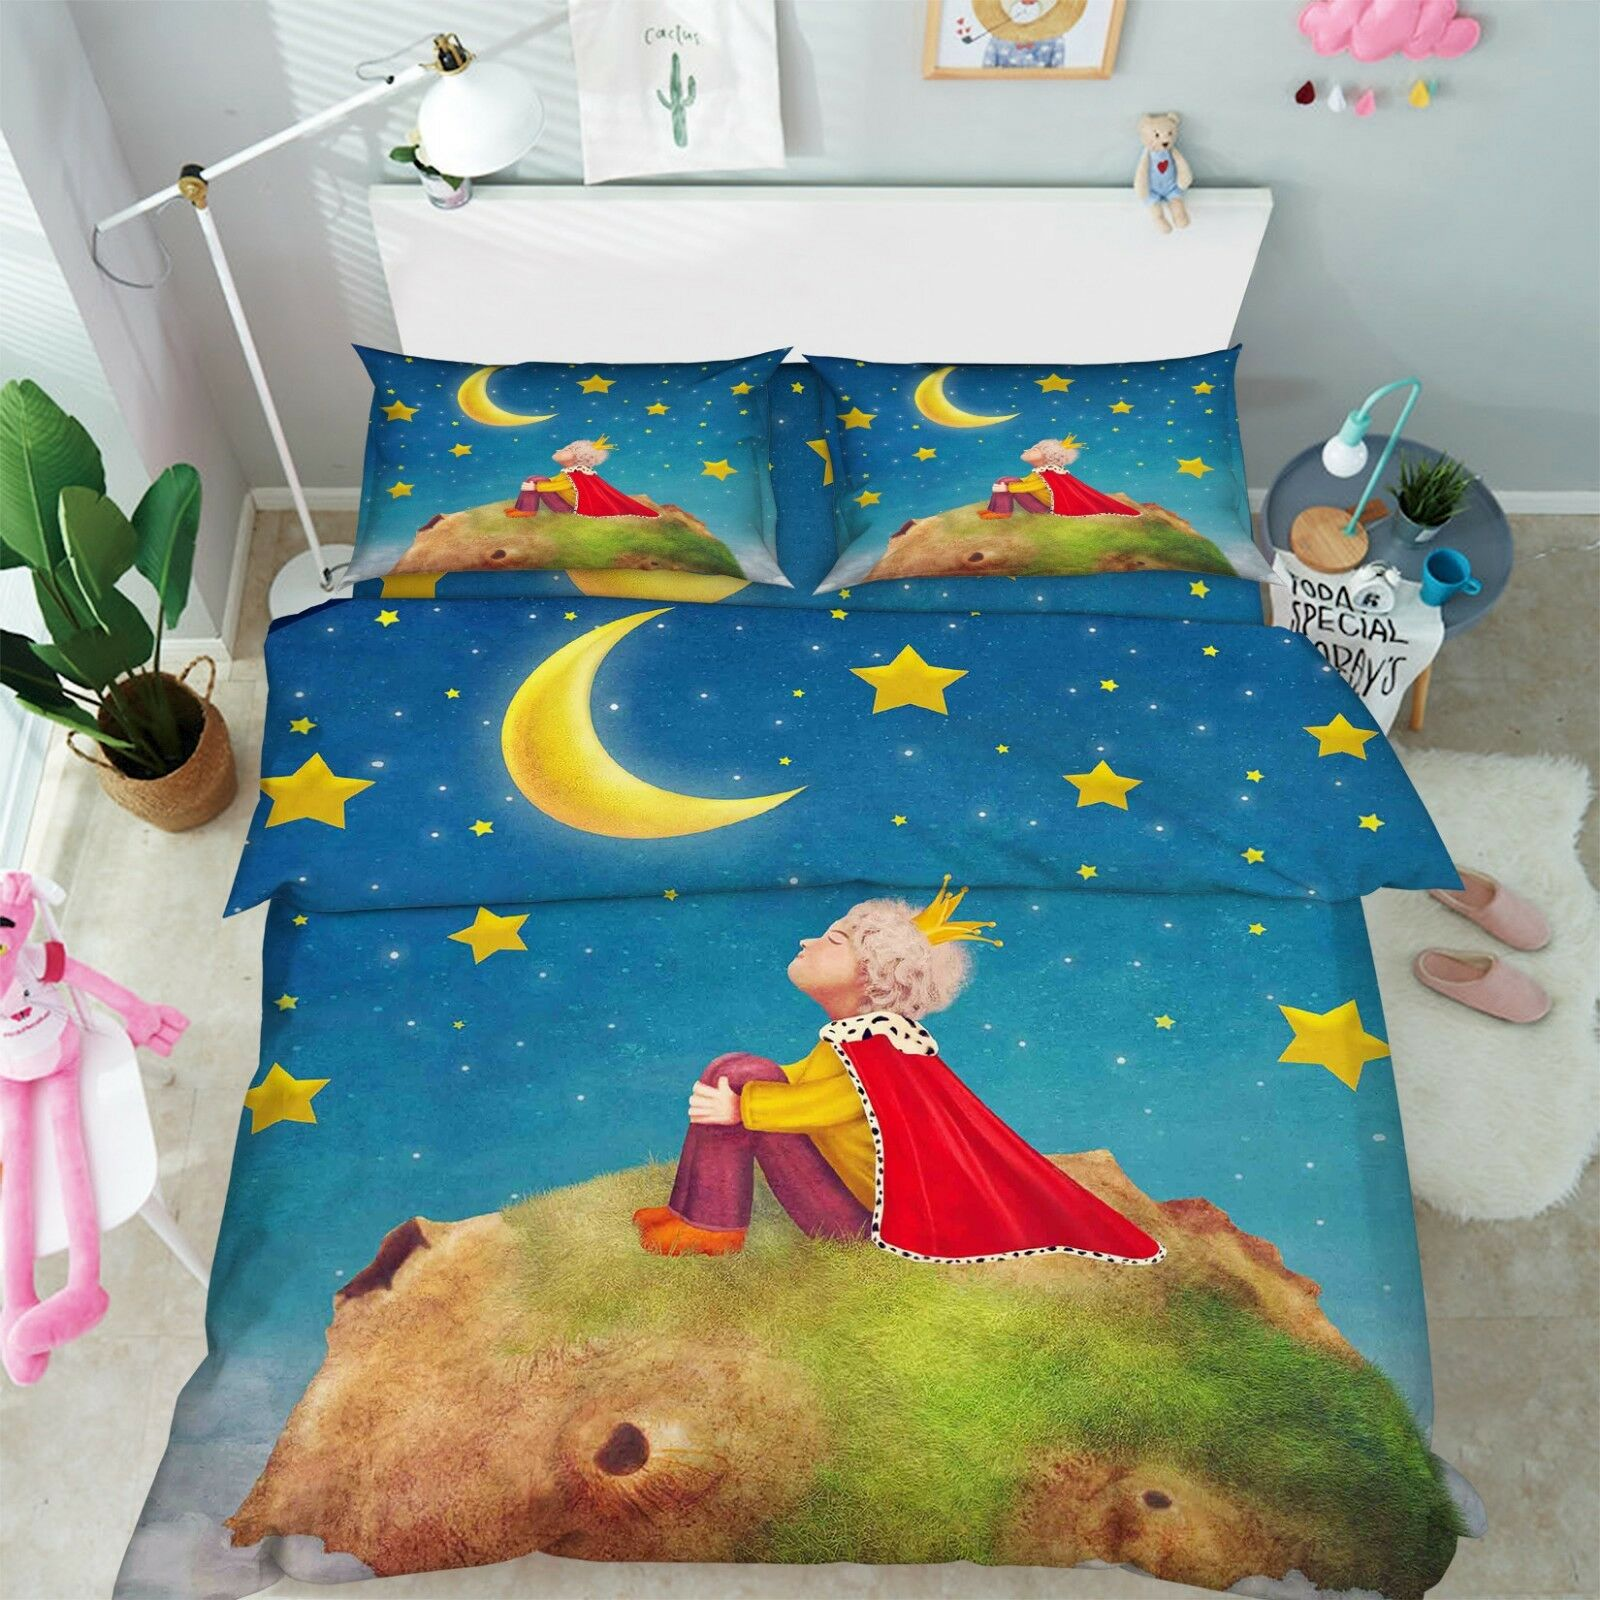 3D Fairy Tale Anime 7 Bed Pillowcases Quilt Duvet Cover Set Single Queen King CA